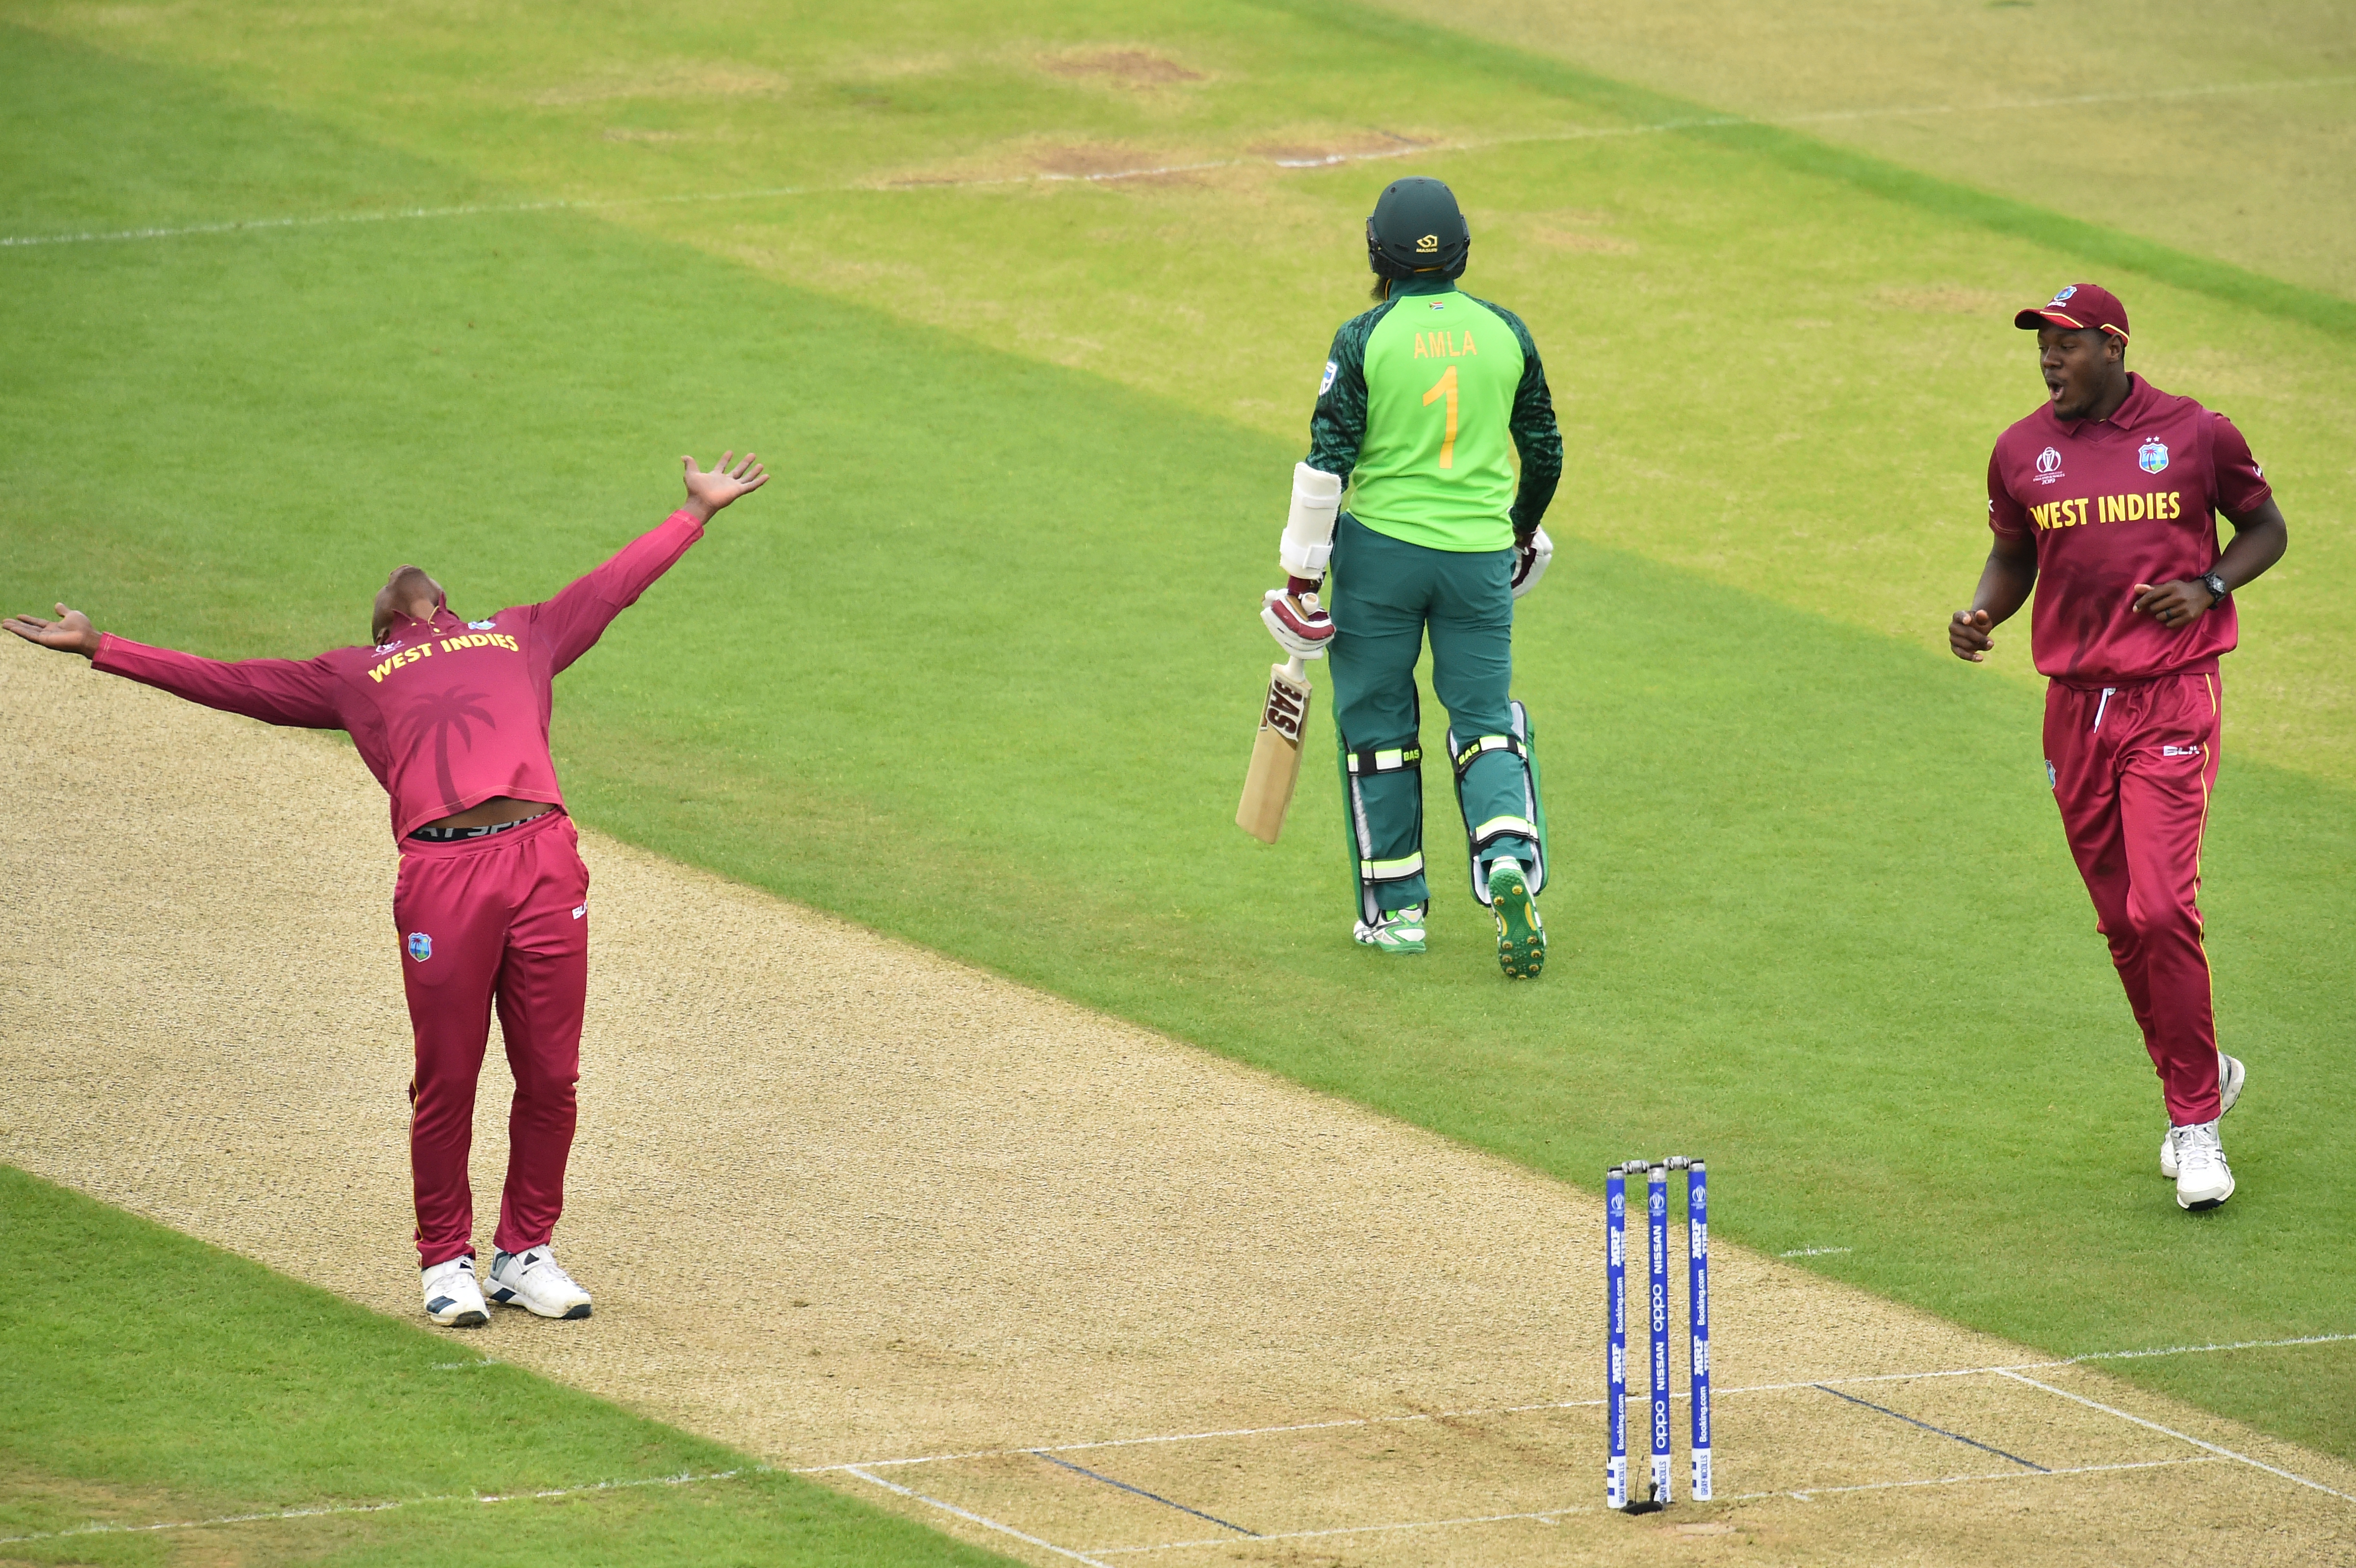 West Indies' Sheldon Cottrell (L) celebrates taking the wicket of South Africa's Hashim Amla (C) during the 2019 Cricket World Cup group stage match at the Rose Bowl in Southampton, southern England, on June 10, 2019.